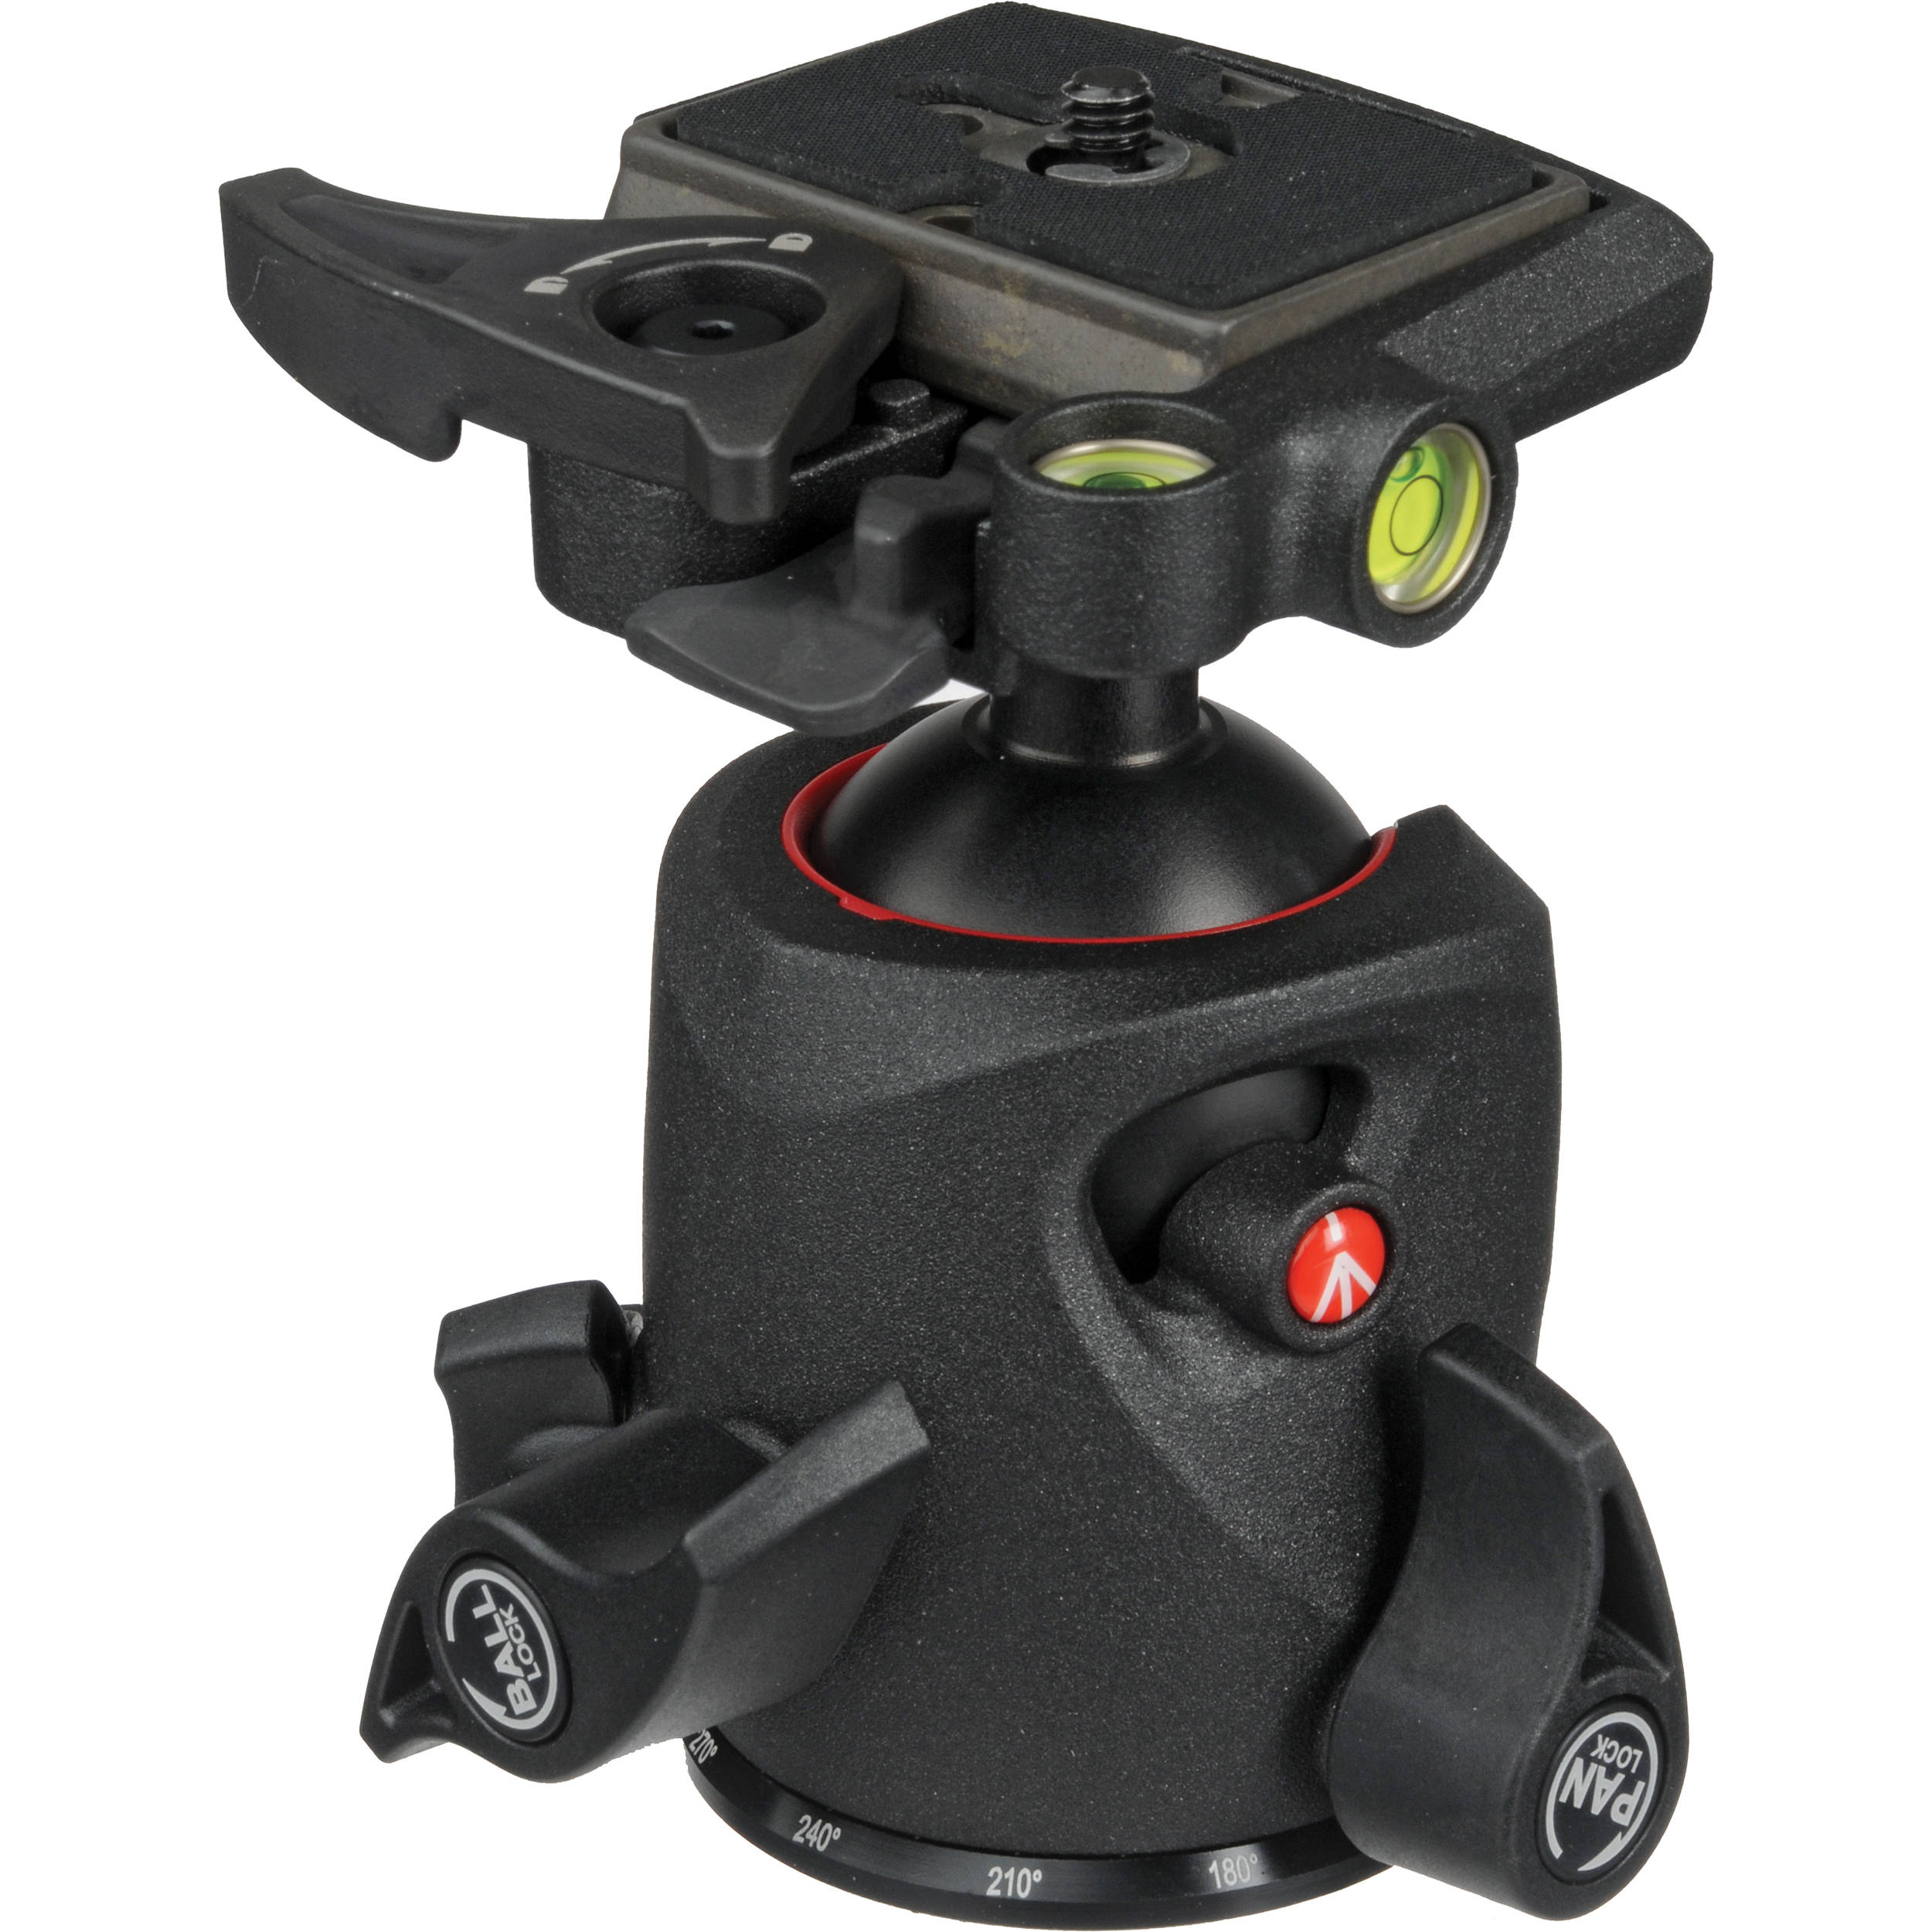 054_Manfrotto 054 Magnesium Ball Head with Q2 Quick MH054M0-Q2 BH